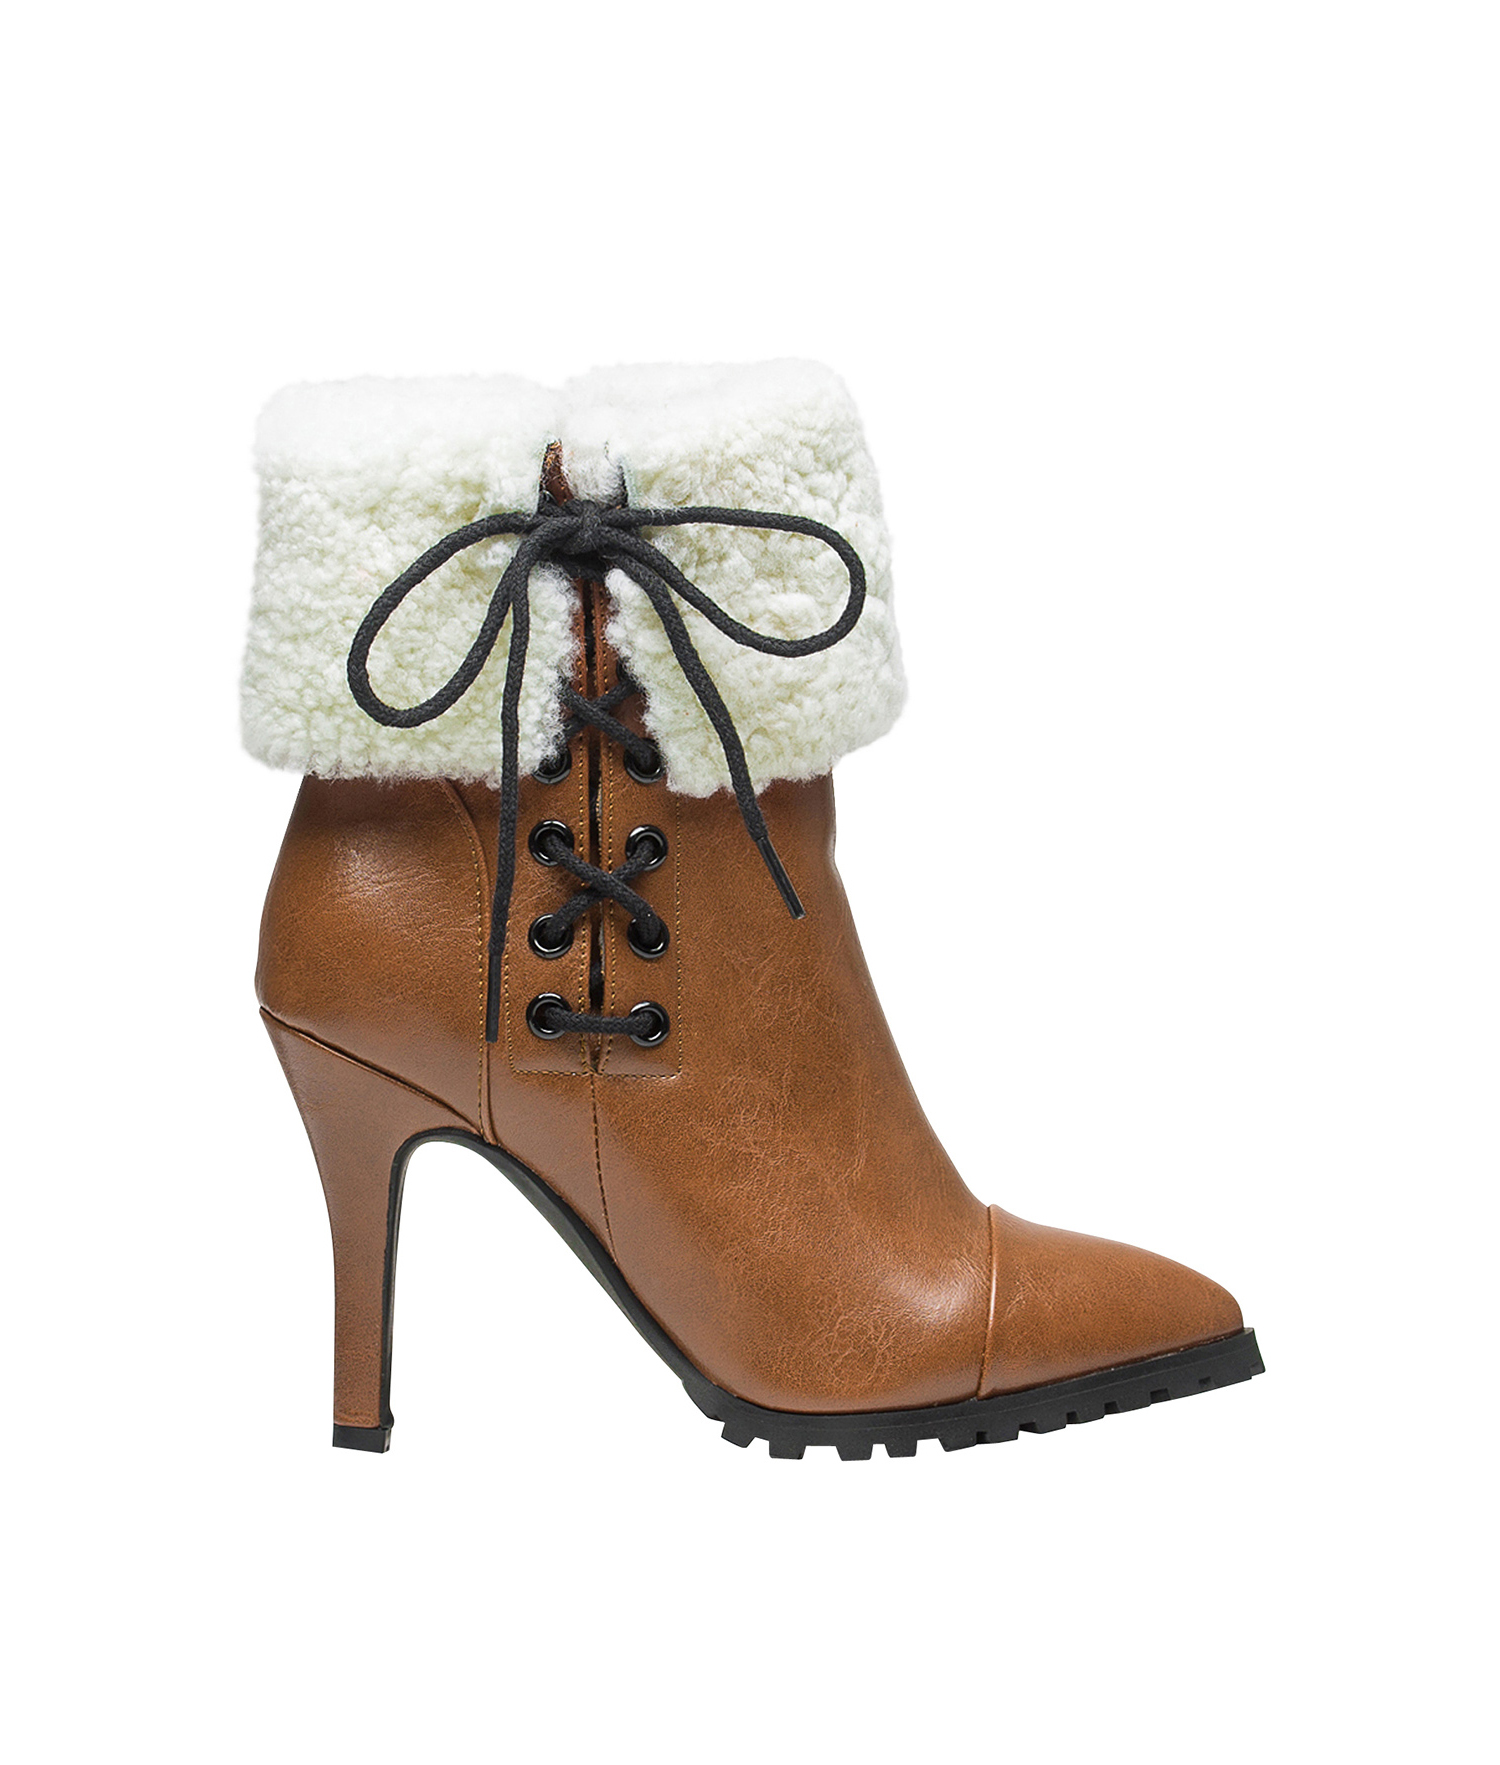 ffa0adc0c7980 AnnaKastle Womens Pointy Toe Shearling Ankle Booties Brown